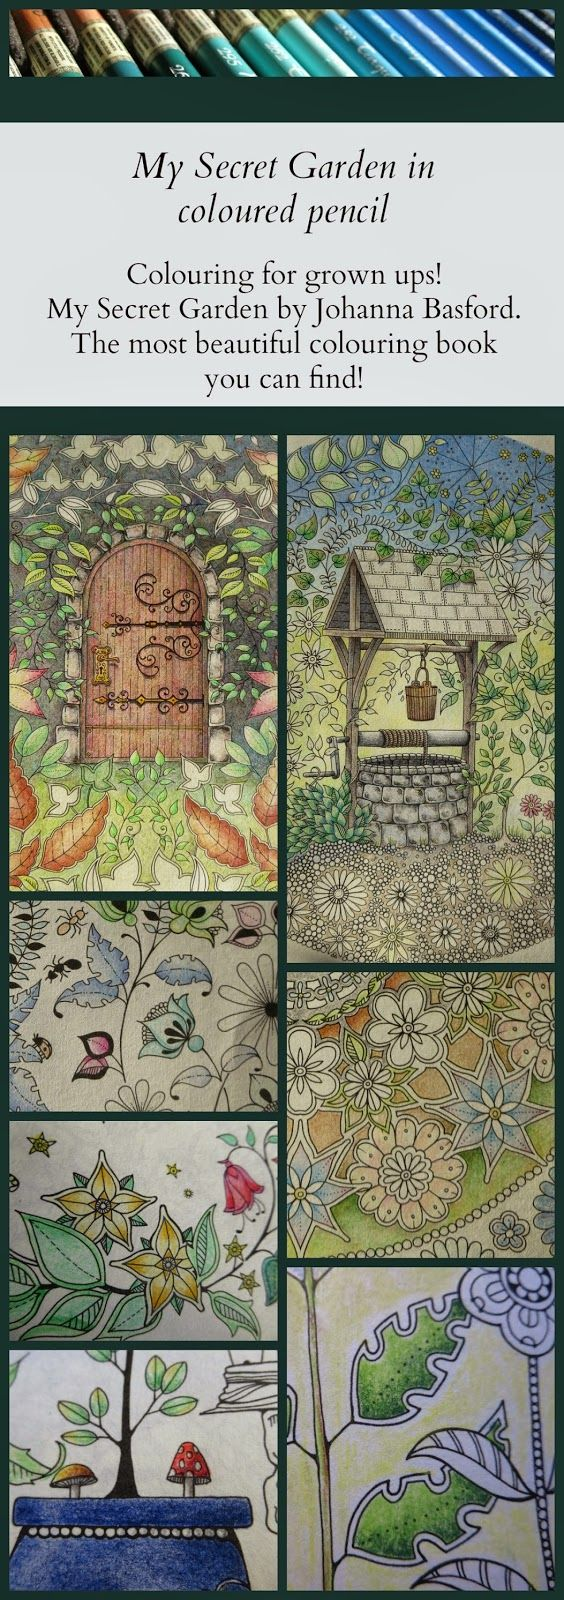 The secret garden coloring book finished - Passion For Pencils My Secret Garden Colouring Book Part 3